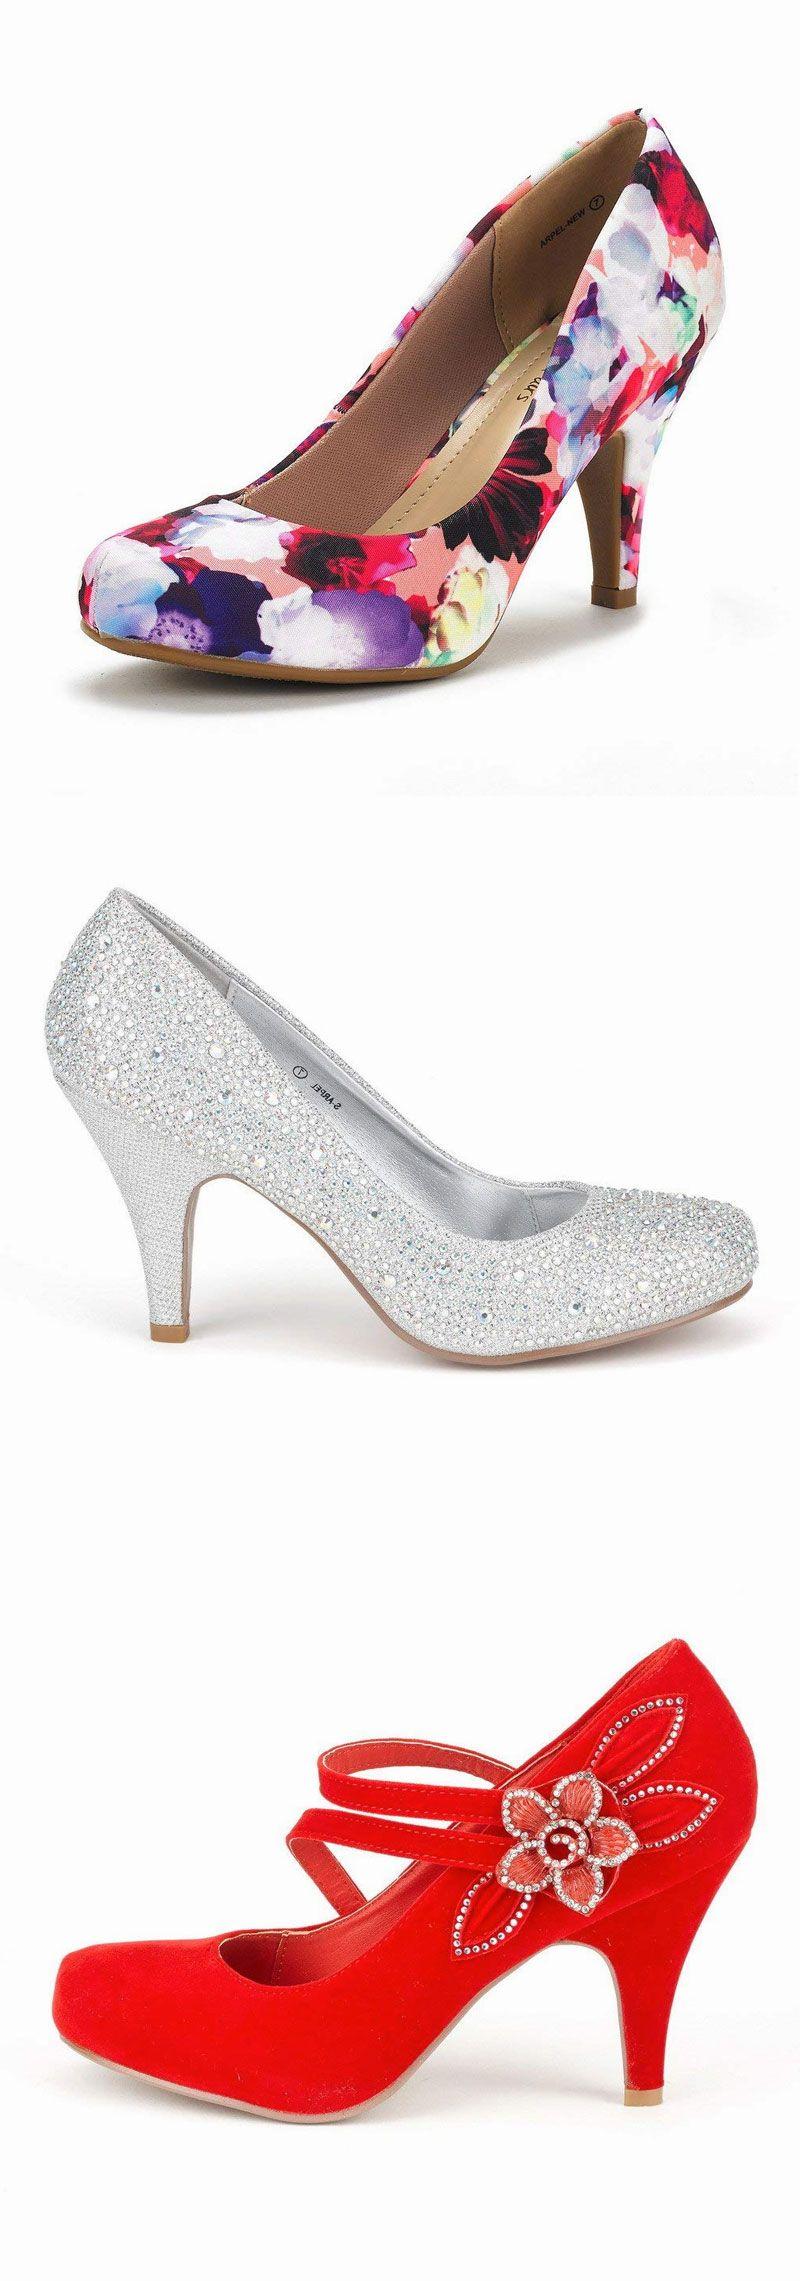 80a47829a0c DREAM PAIRS ARPEL BERRY Women s Formal Evening Dance Rhinestones Classic  Low Heel Pumps Shoes New